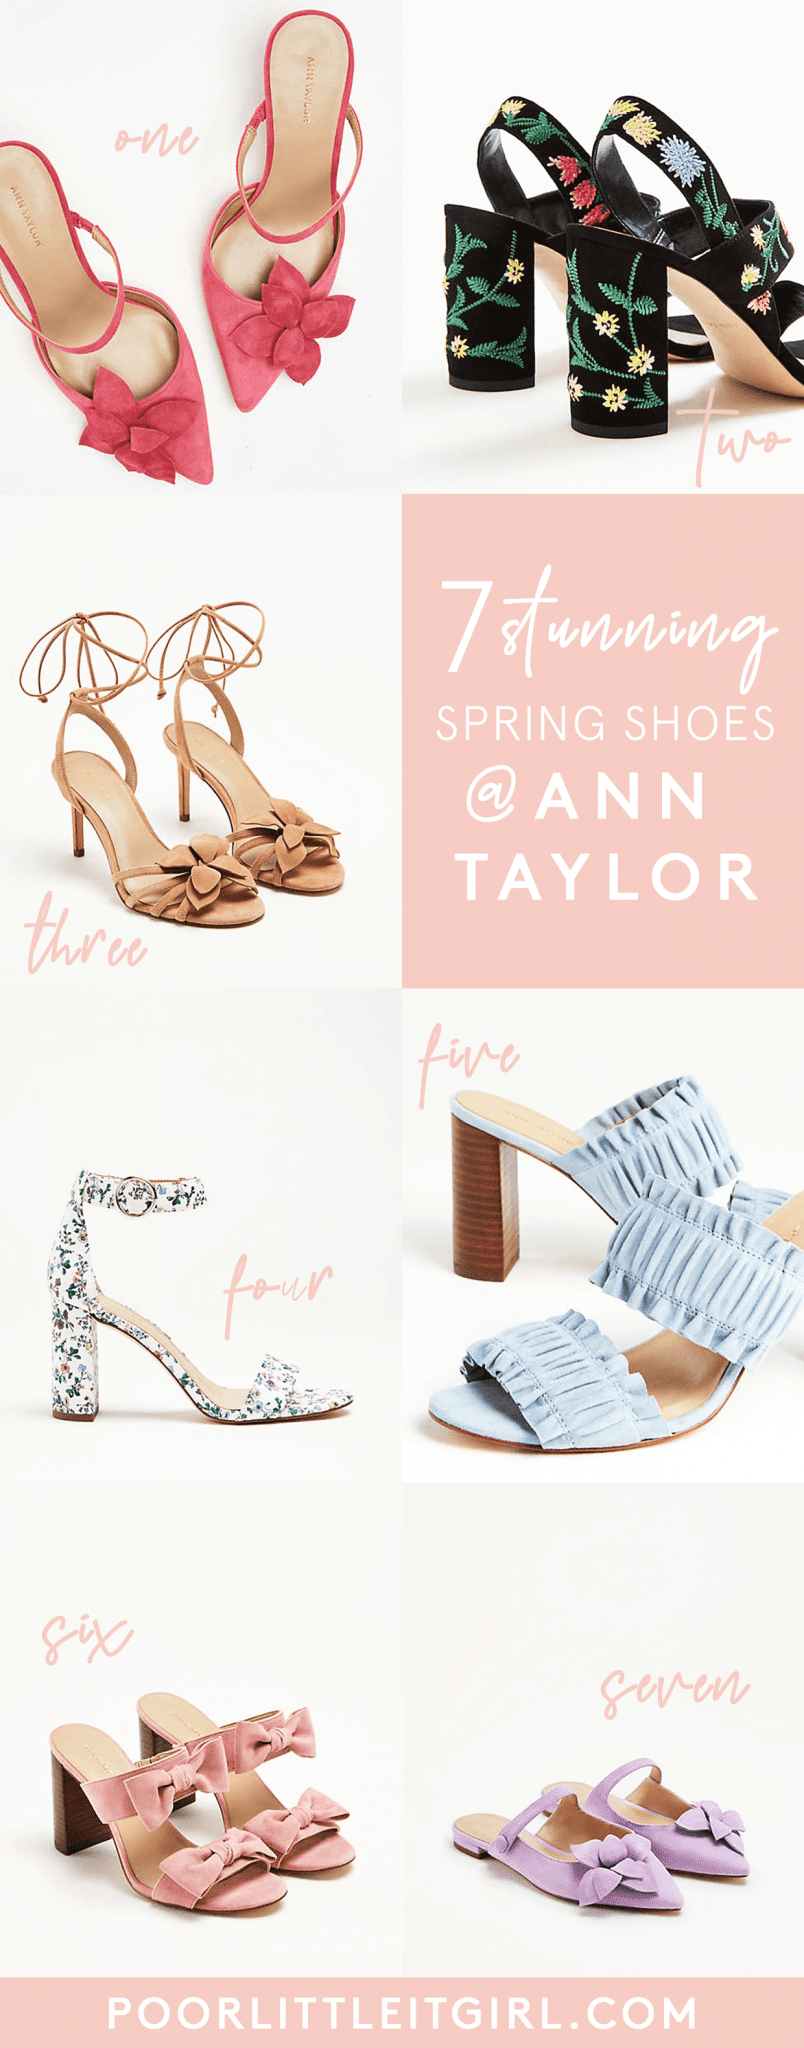 7198c4986b36 That s why this week s Weekly Weakness is all about the 7 Cute Spring Shoes  at Ann Taylor I can t stop obsessing over! Y all